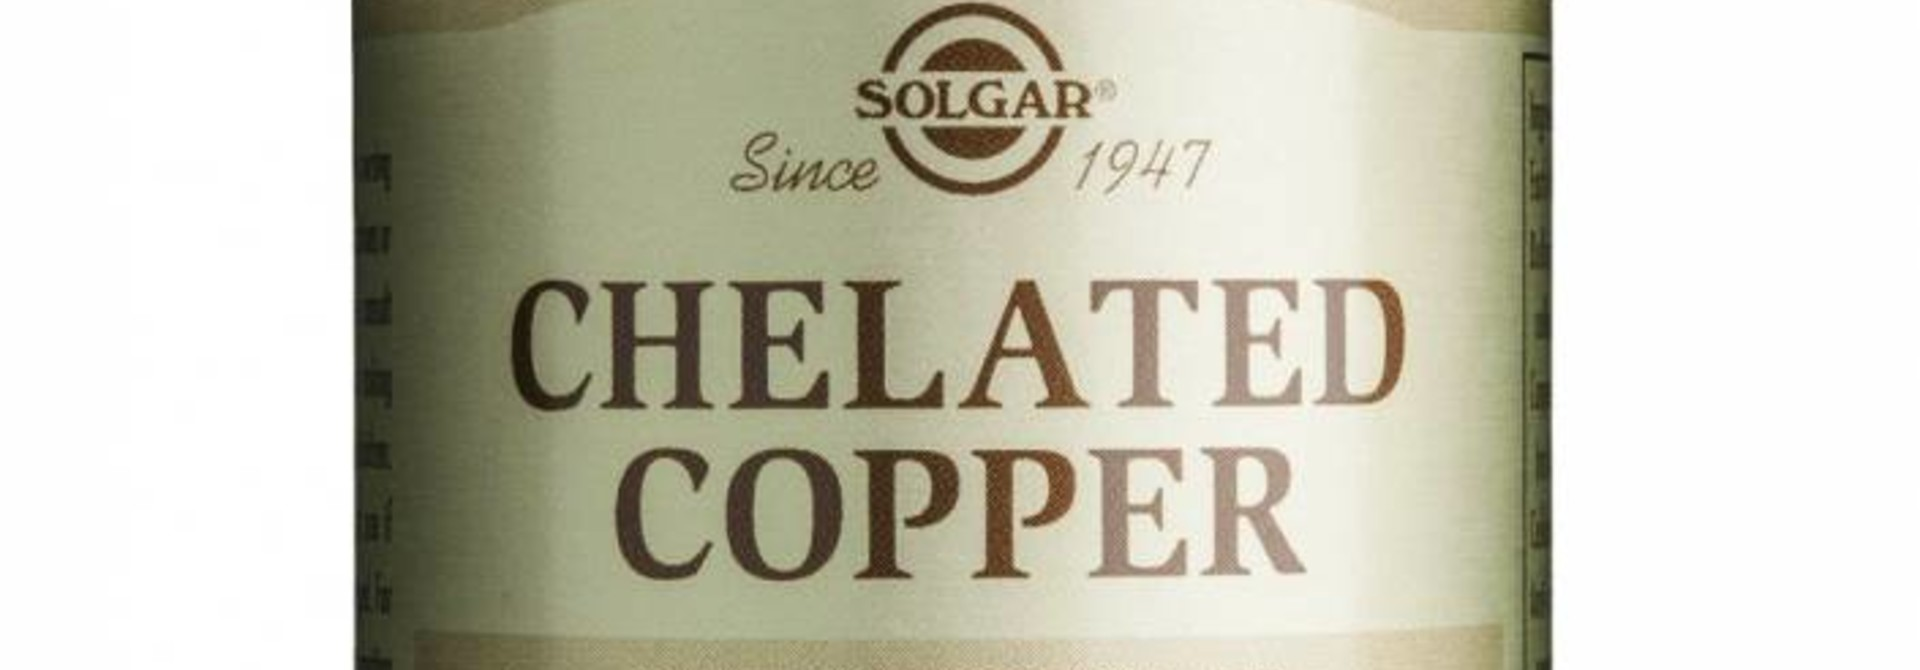 Chelated Copper 100 tabletten